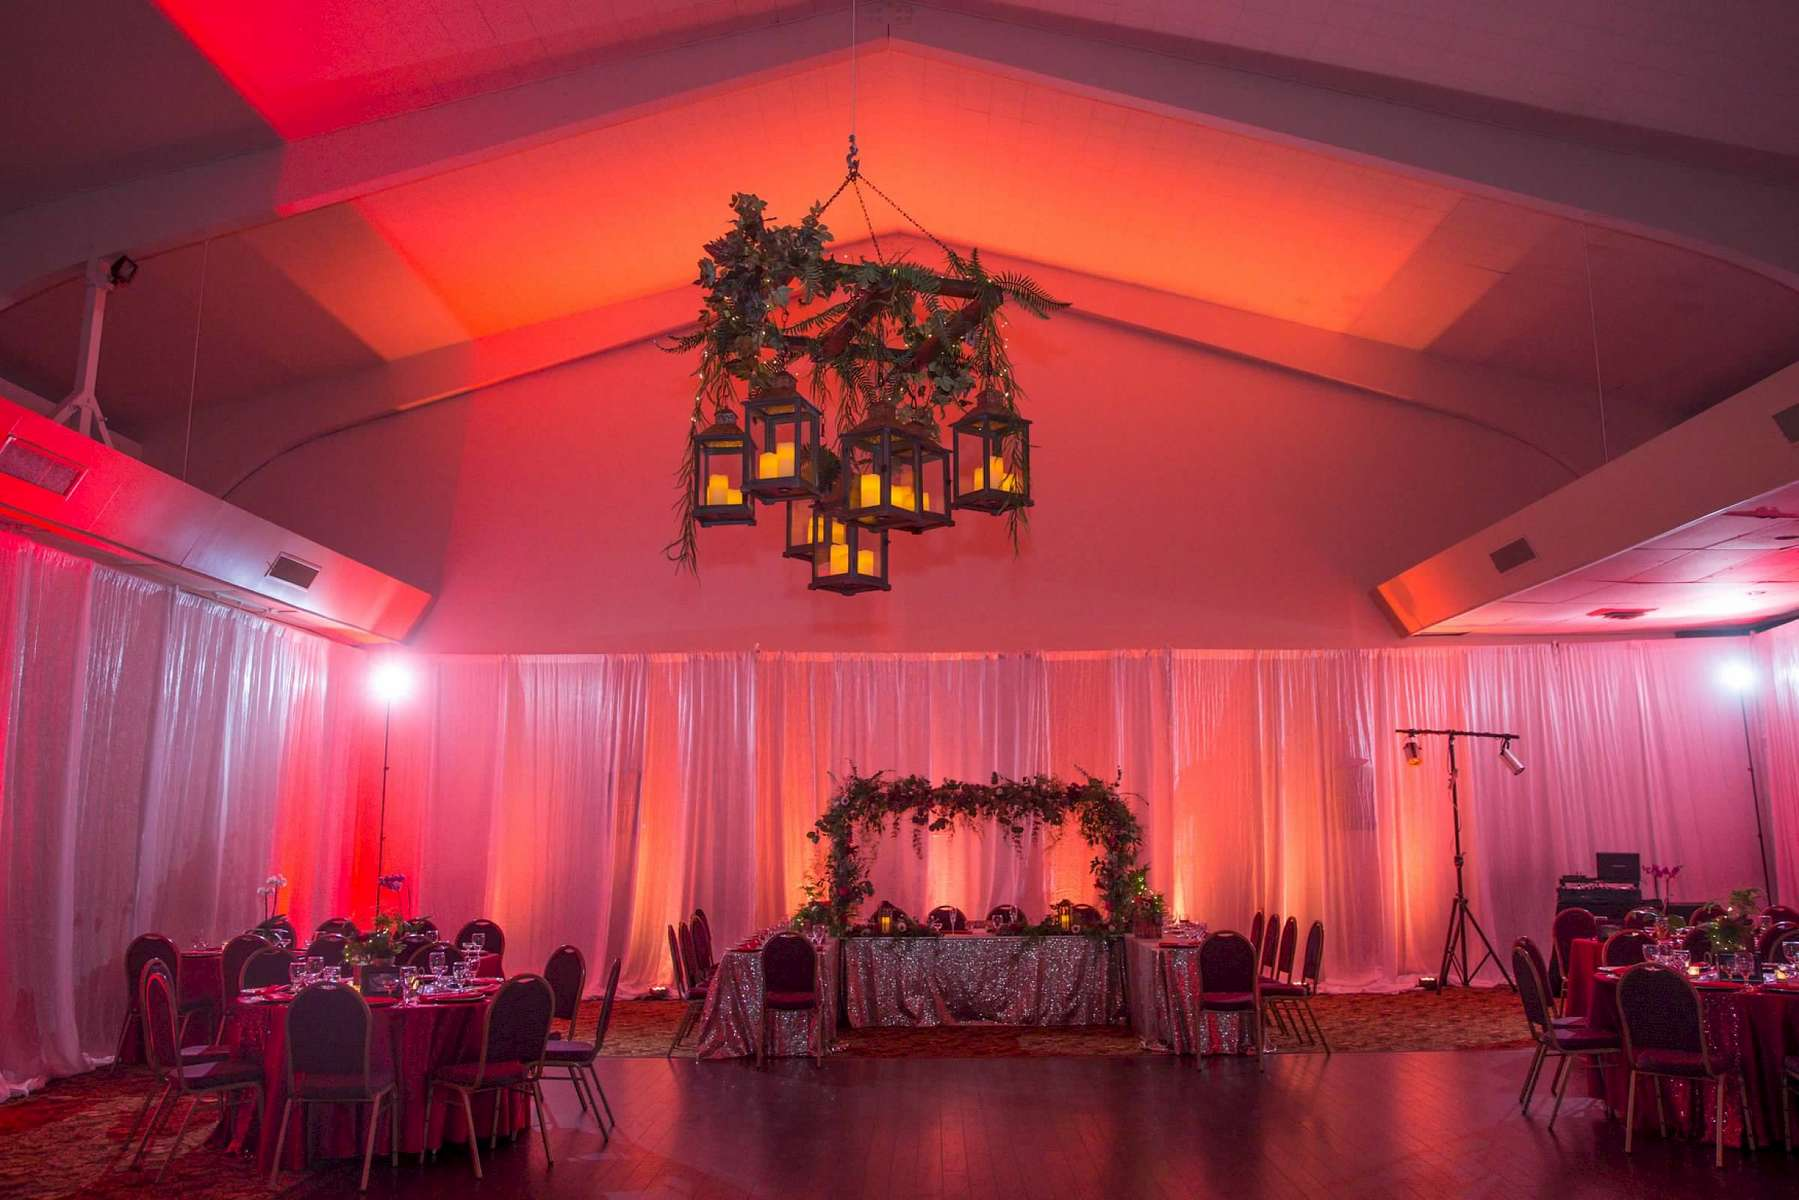 Can be customized with greenery, florals, different lights, Japanese lanterns, etc.